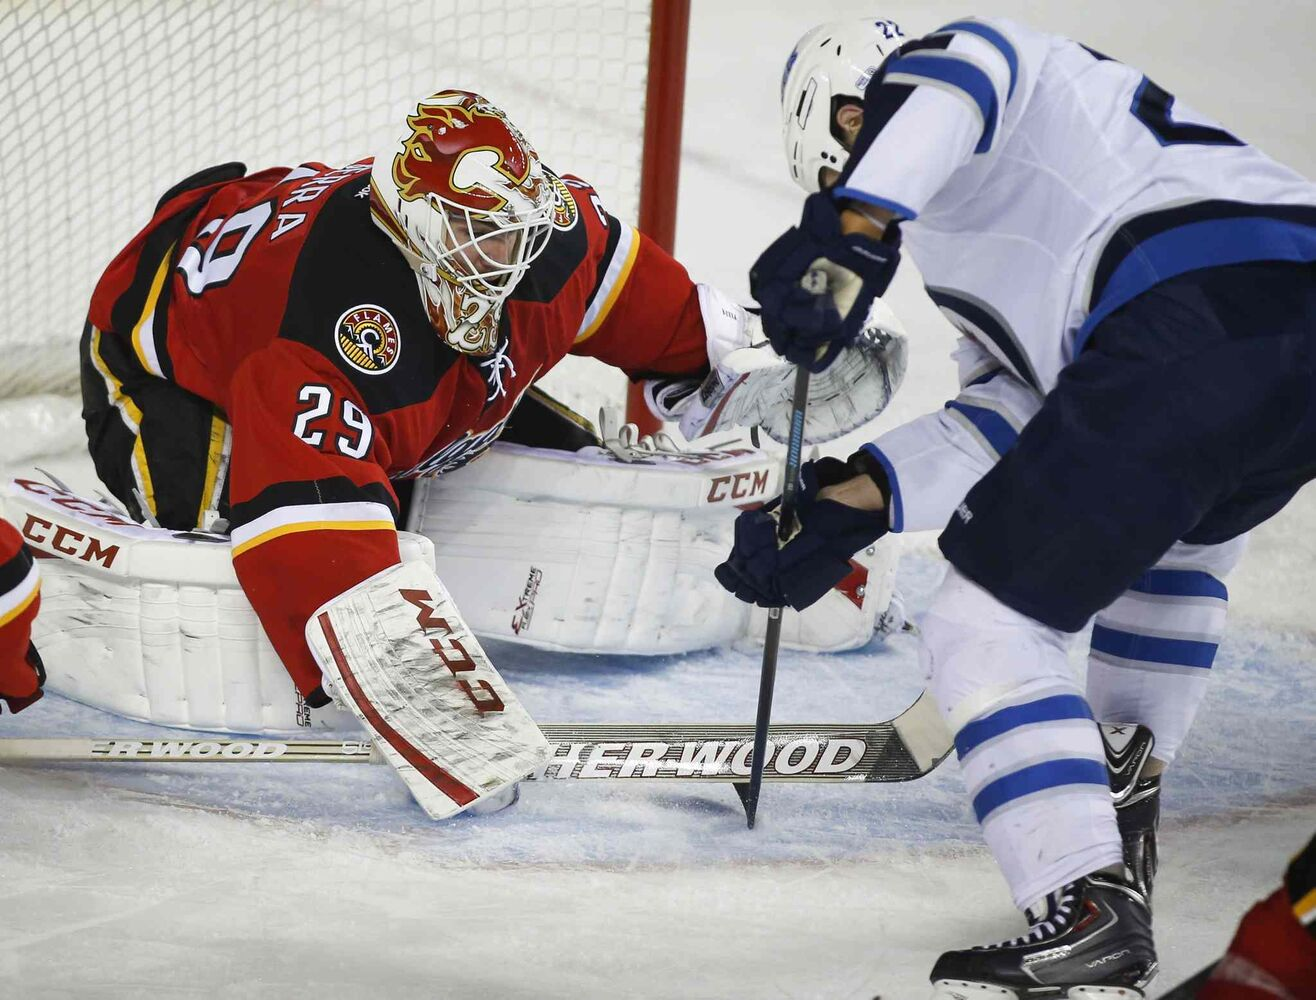 Winnipeg Jets' Chris Thorburn, right, has his stick trapped by Calgary Flames' goalie Reto Berra during the second period Thursday.  (Jeff McIntosh / The Canadian Press)